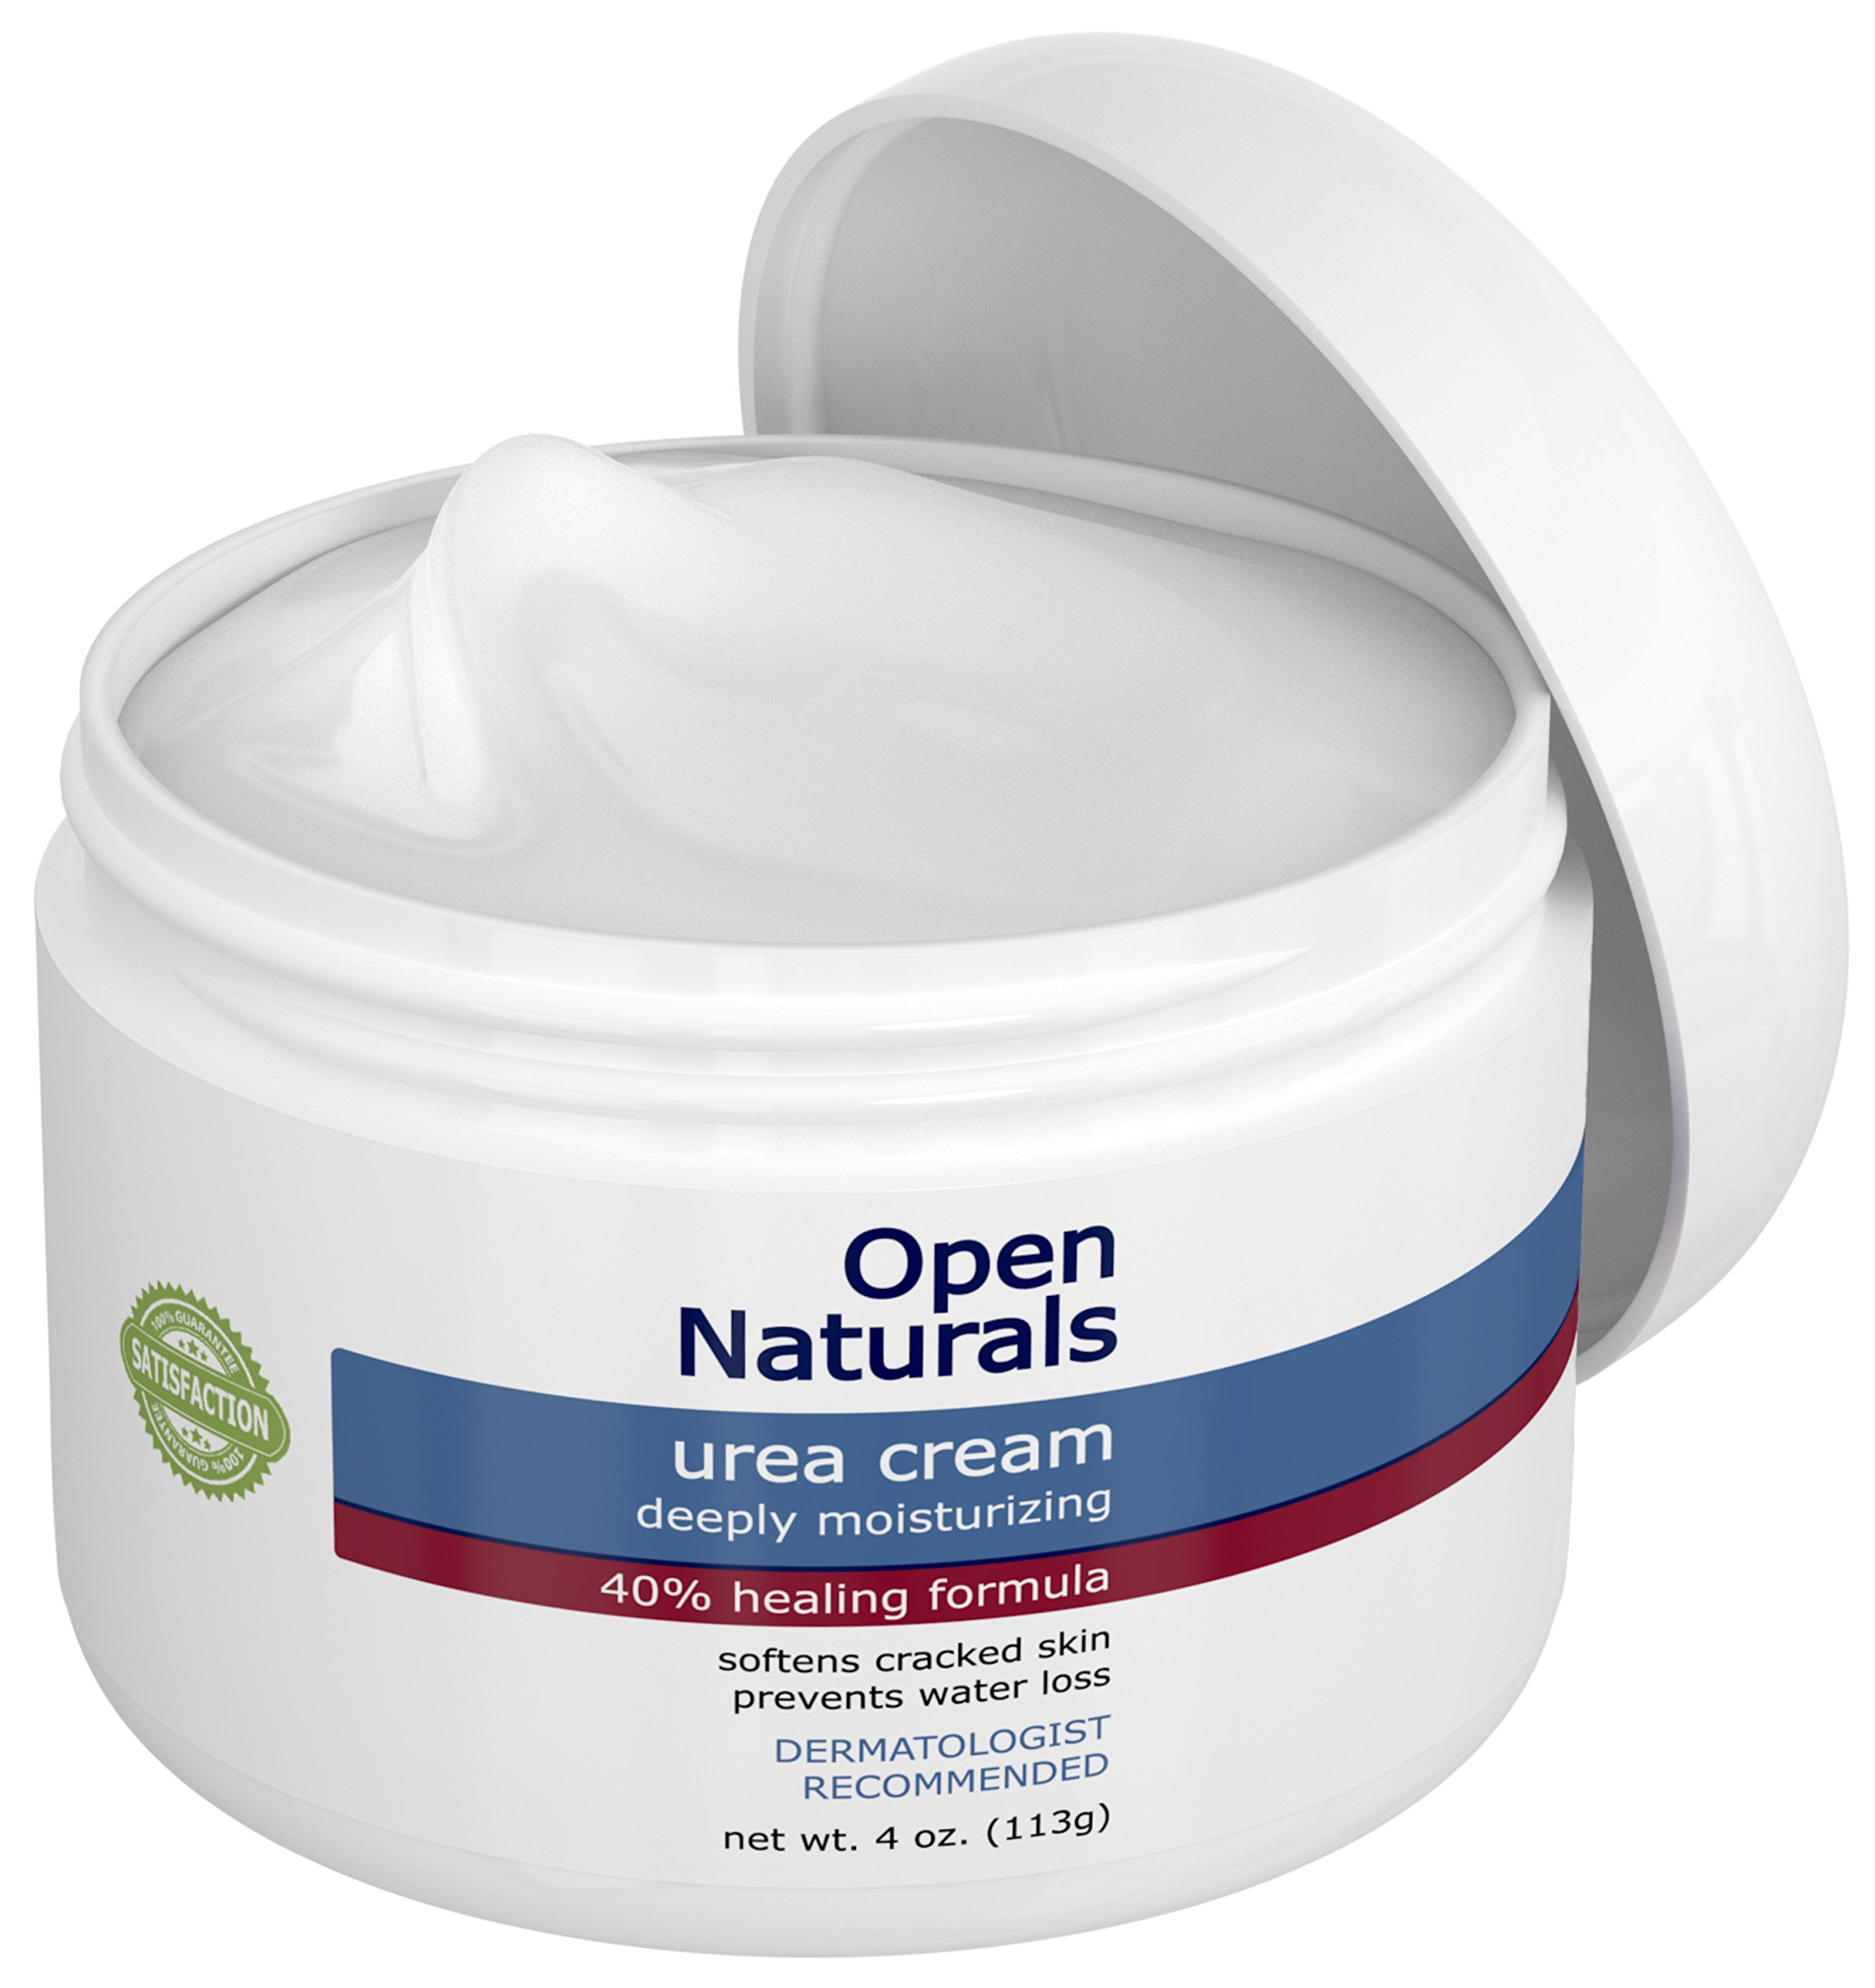 Open Naturals Urea 40% Foot Cream - 4 oz - Premium Callus Remover - Moisturizes and Rehydrates Thick, Cracked, Rough, Dead and Dry Skin - Elbow, Feet - Your Satisfaction or 100% Money Back Guarantee by Open Naturals (Image #7)